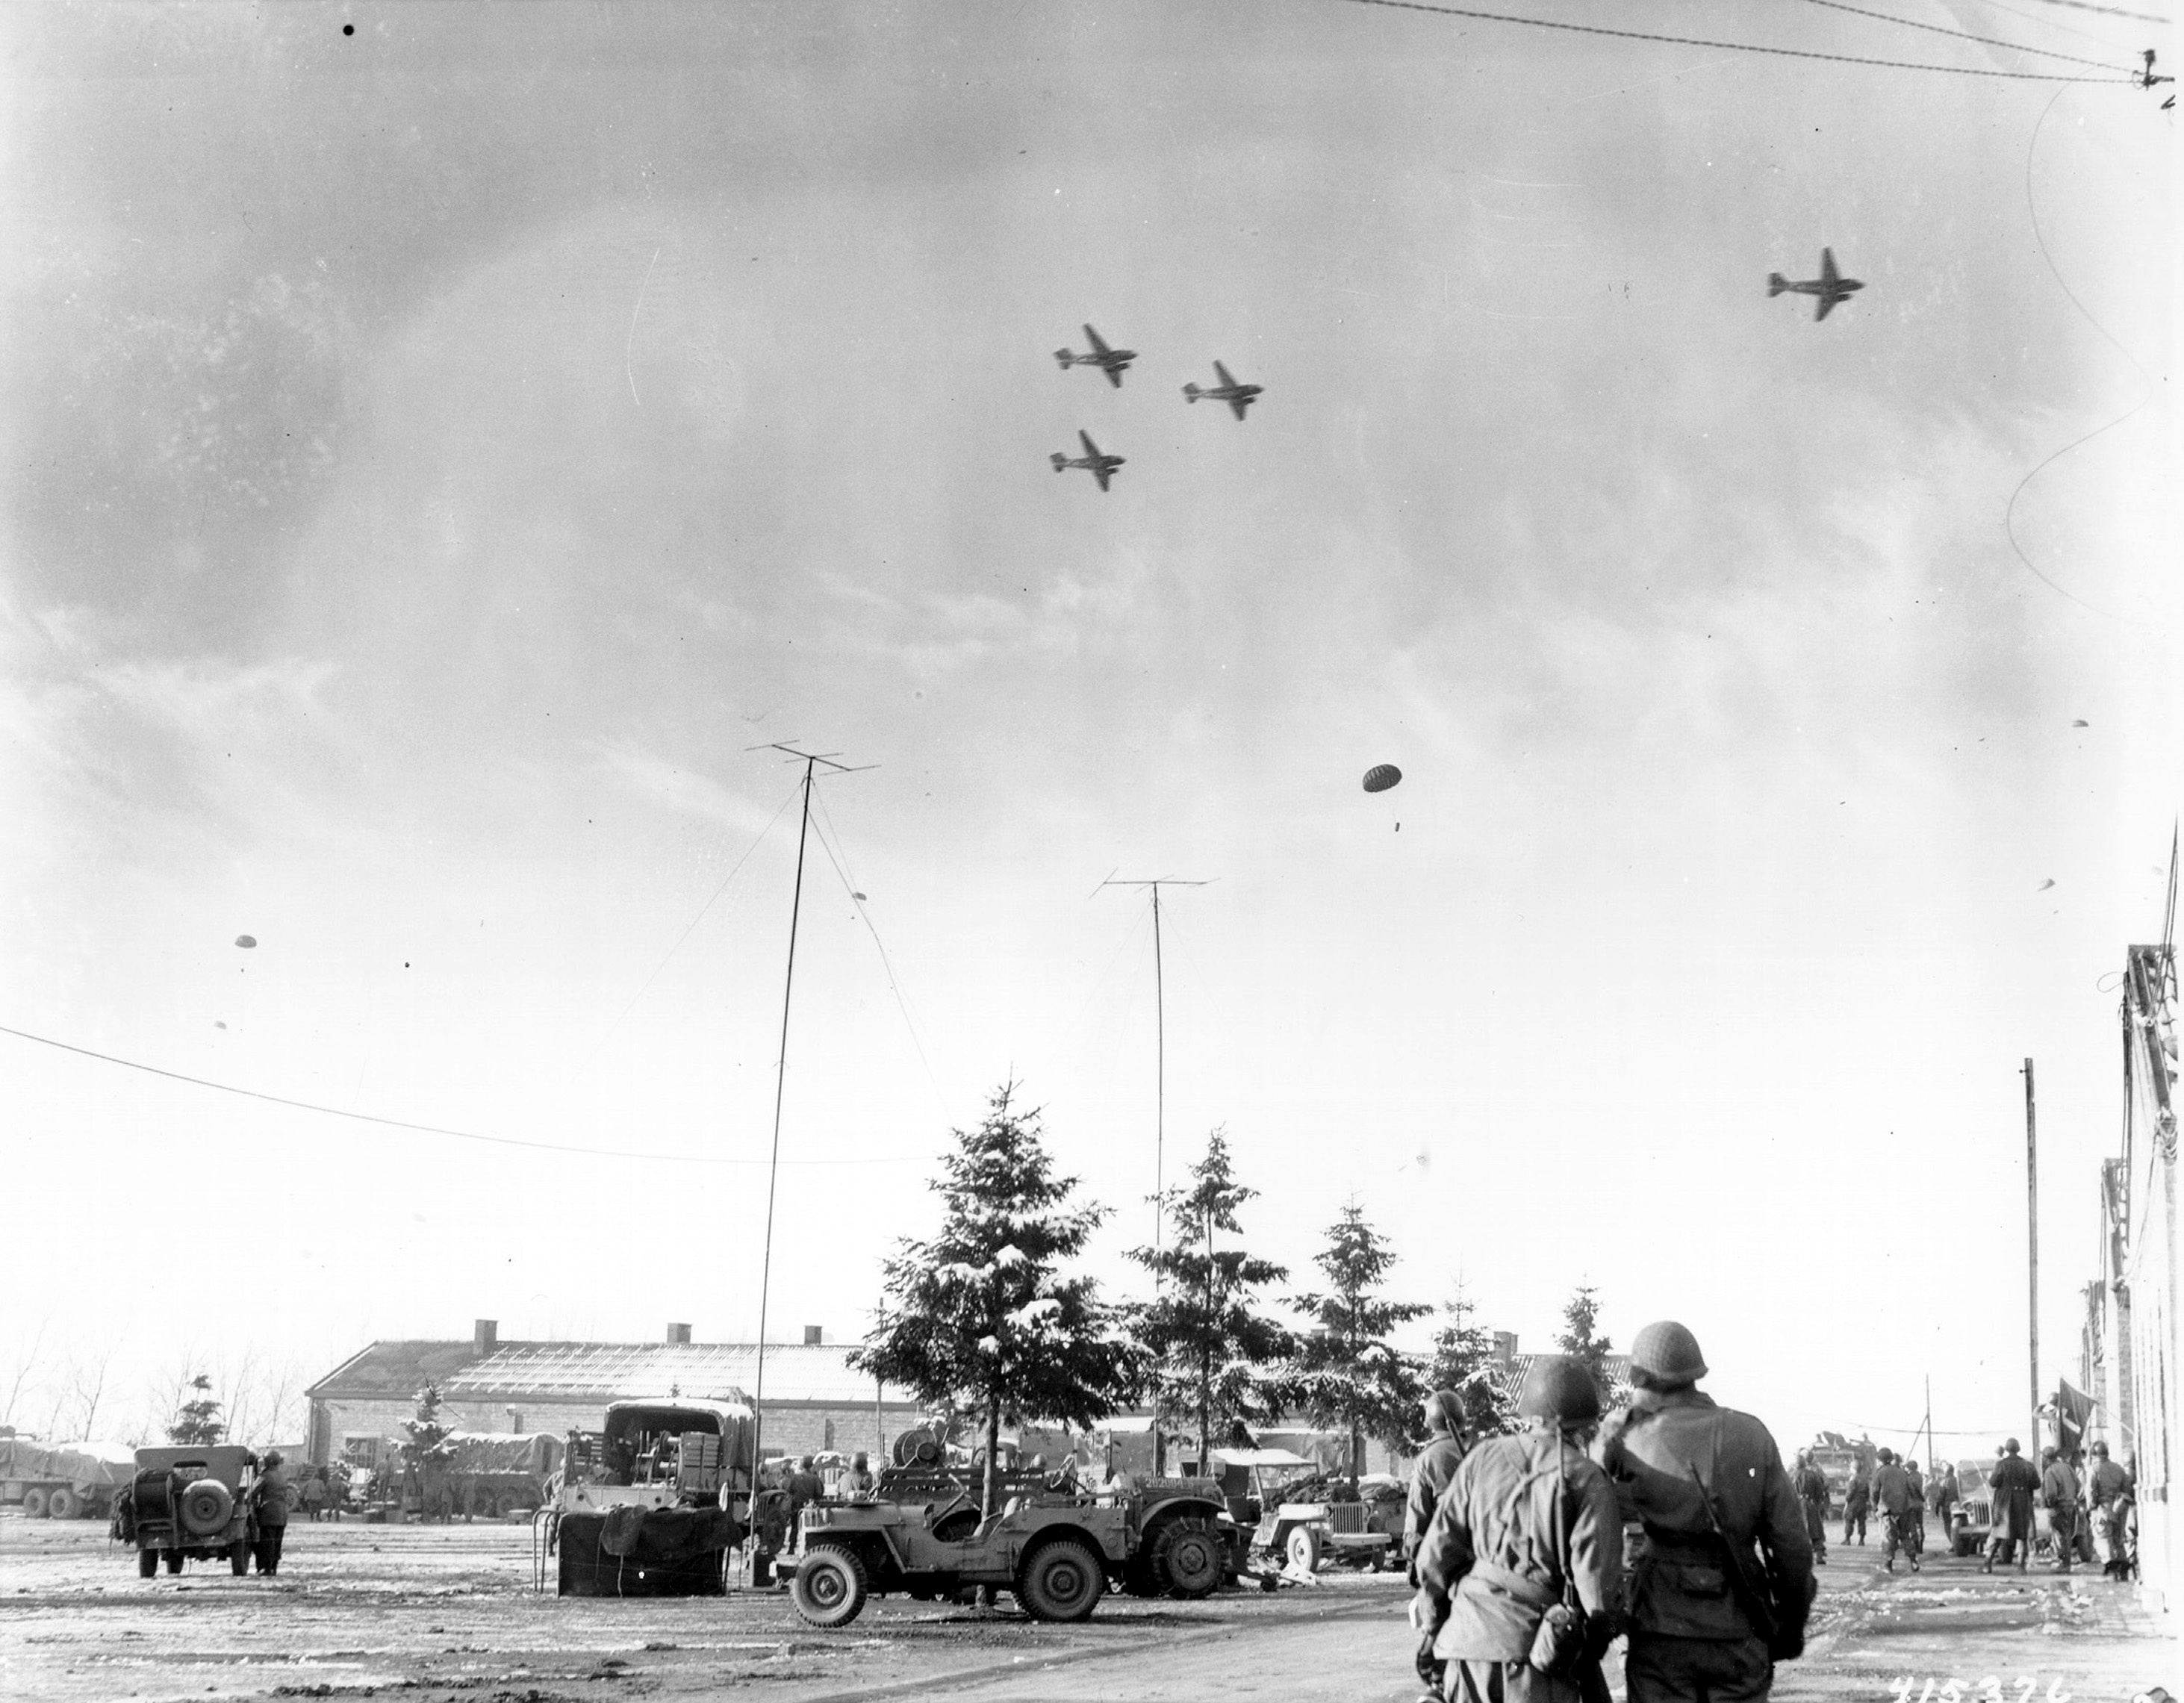 Troops of US 101st Airborne Division watching C-47 Skytrain aircraft delivering supplies to their unit, Bastogne, Belgium, 26 Dec 1944. (US Army Signal Corps)